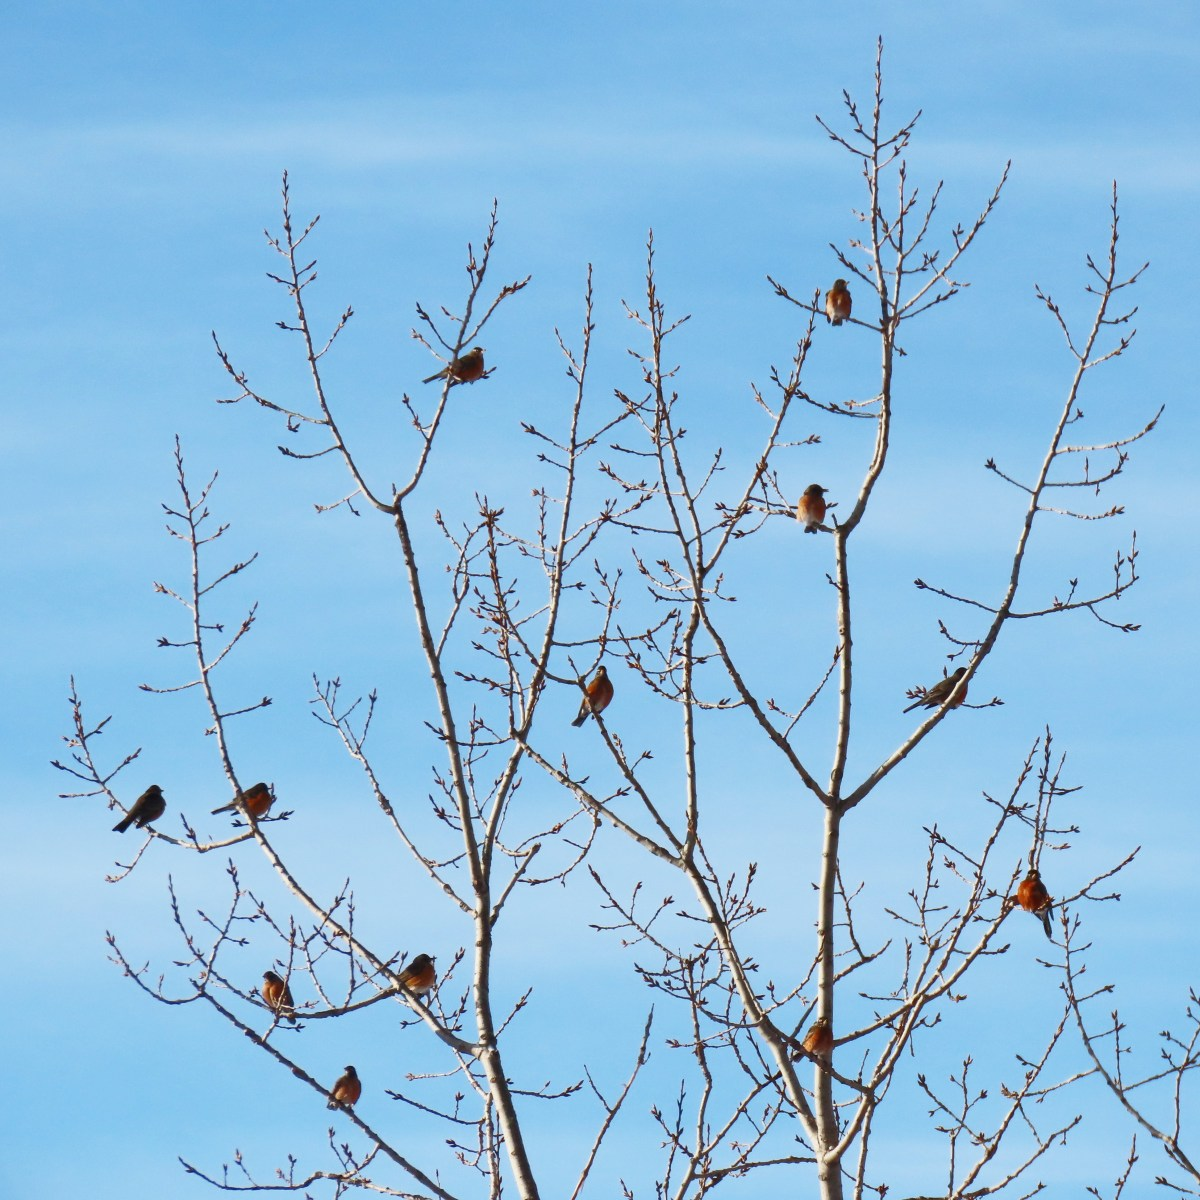 A flock of Robins perched in a tree top with a bright-blue sky